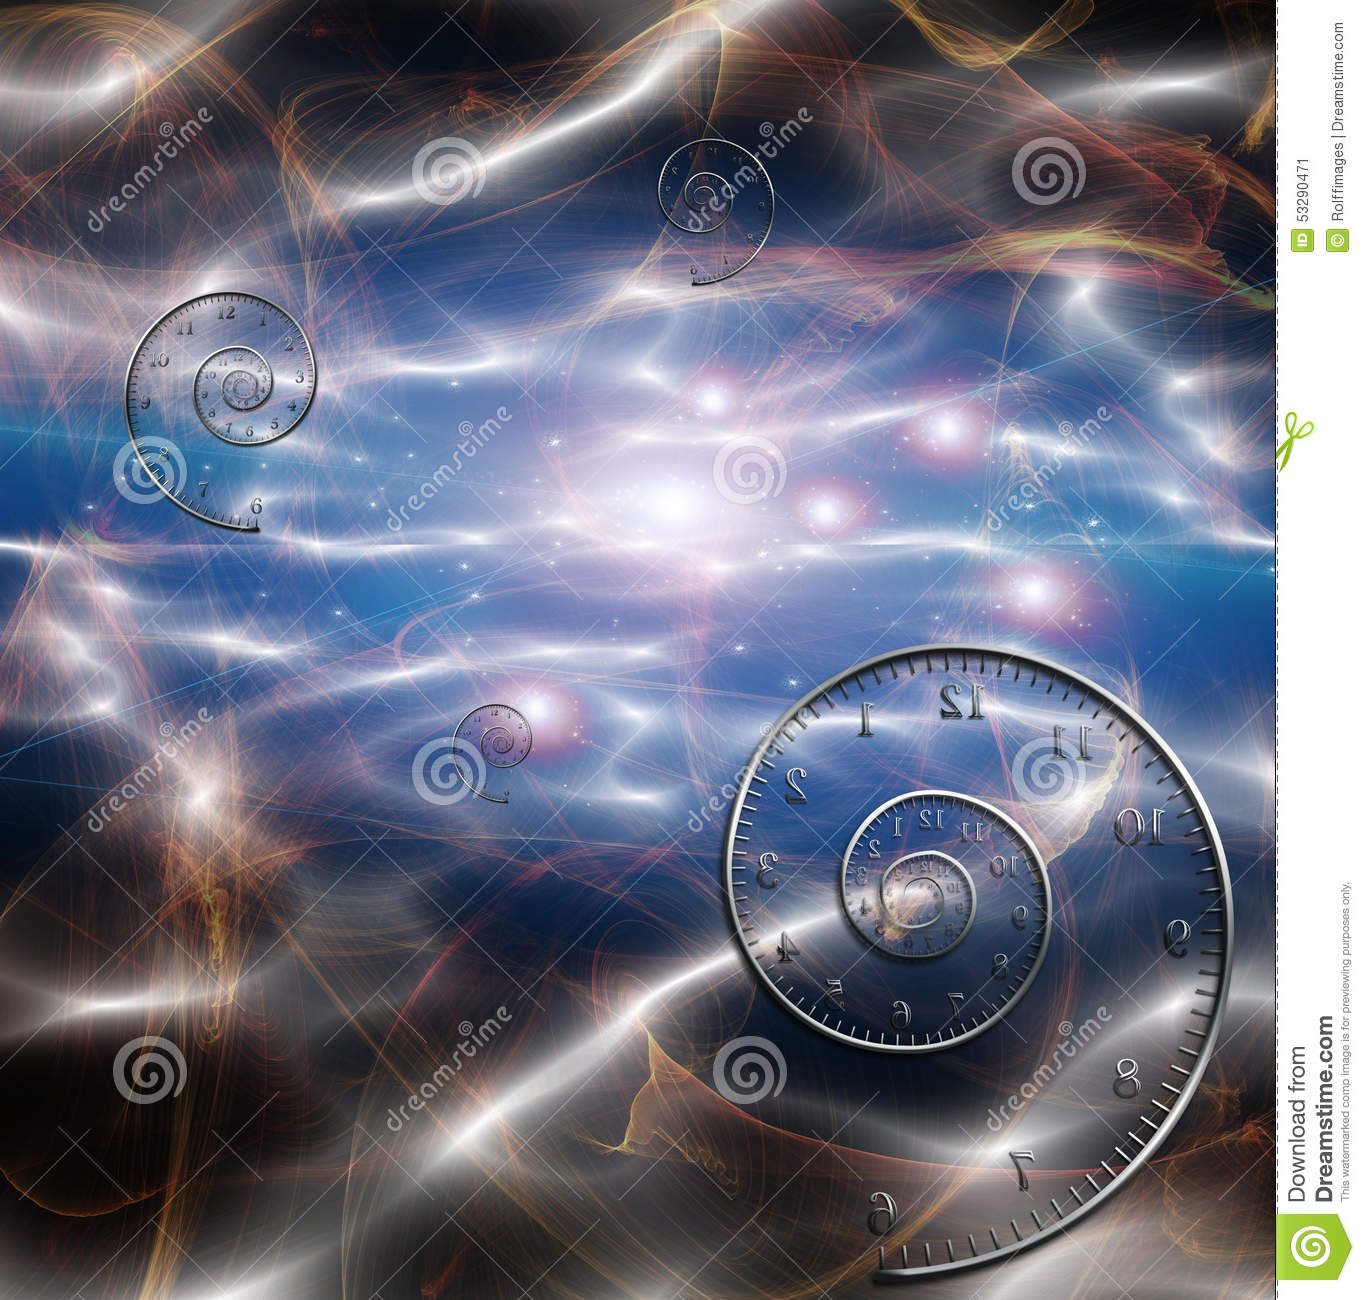 Time space fabric stock illustration image 53290471 for 3d space fabric